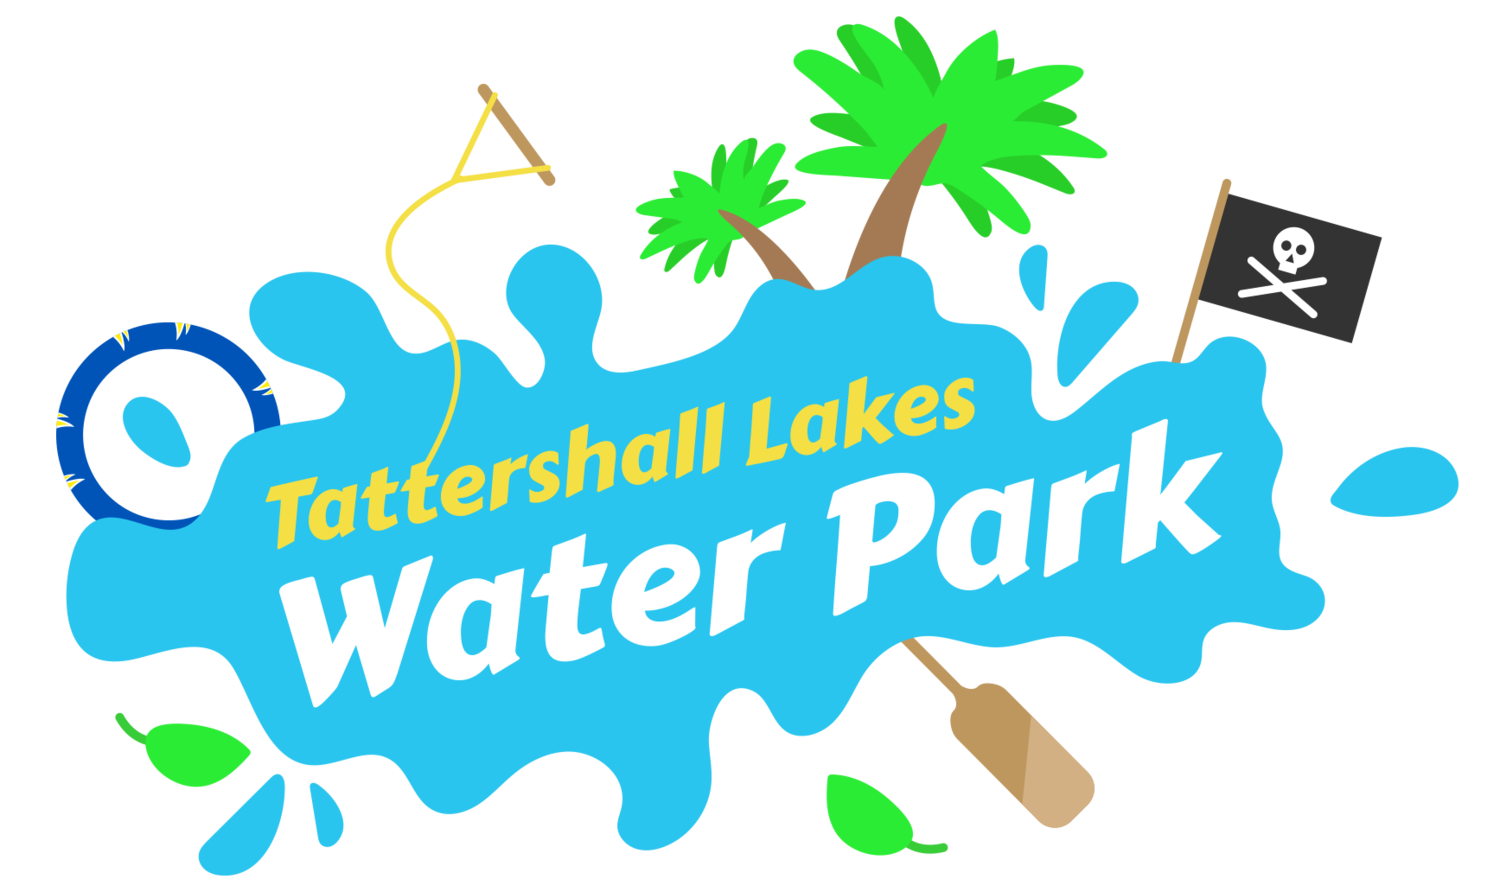 Tattershall Lakes Water Park, Cable and Aqua Park, Lincolnshire.